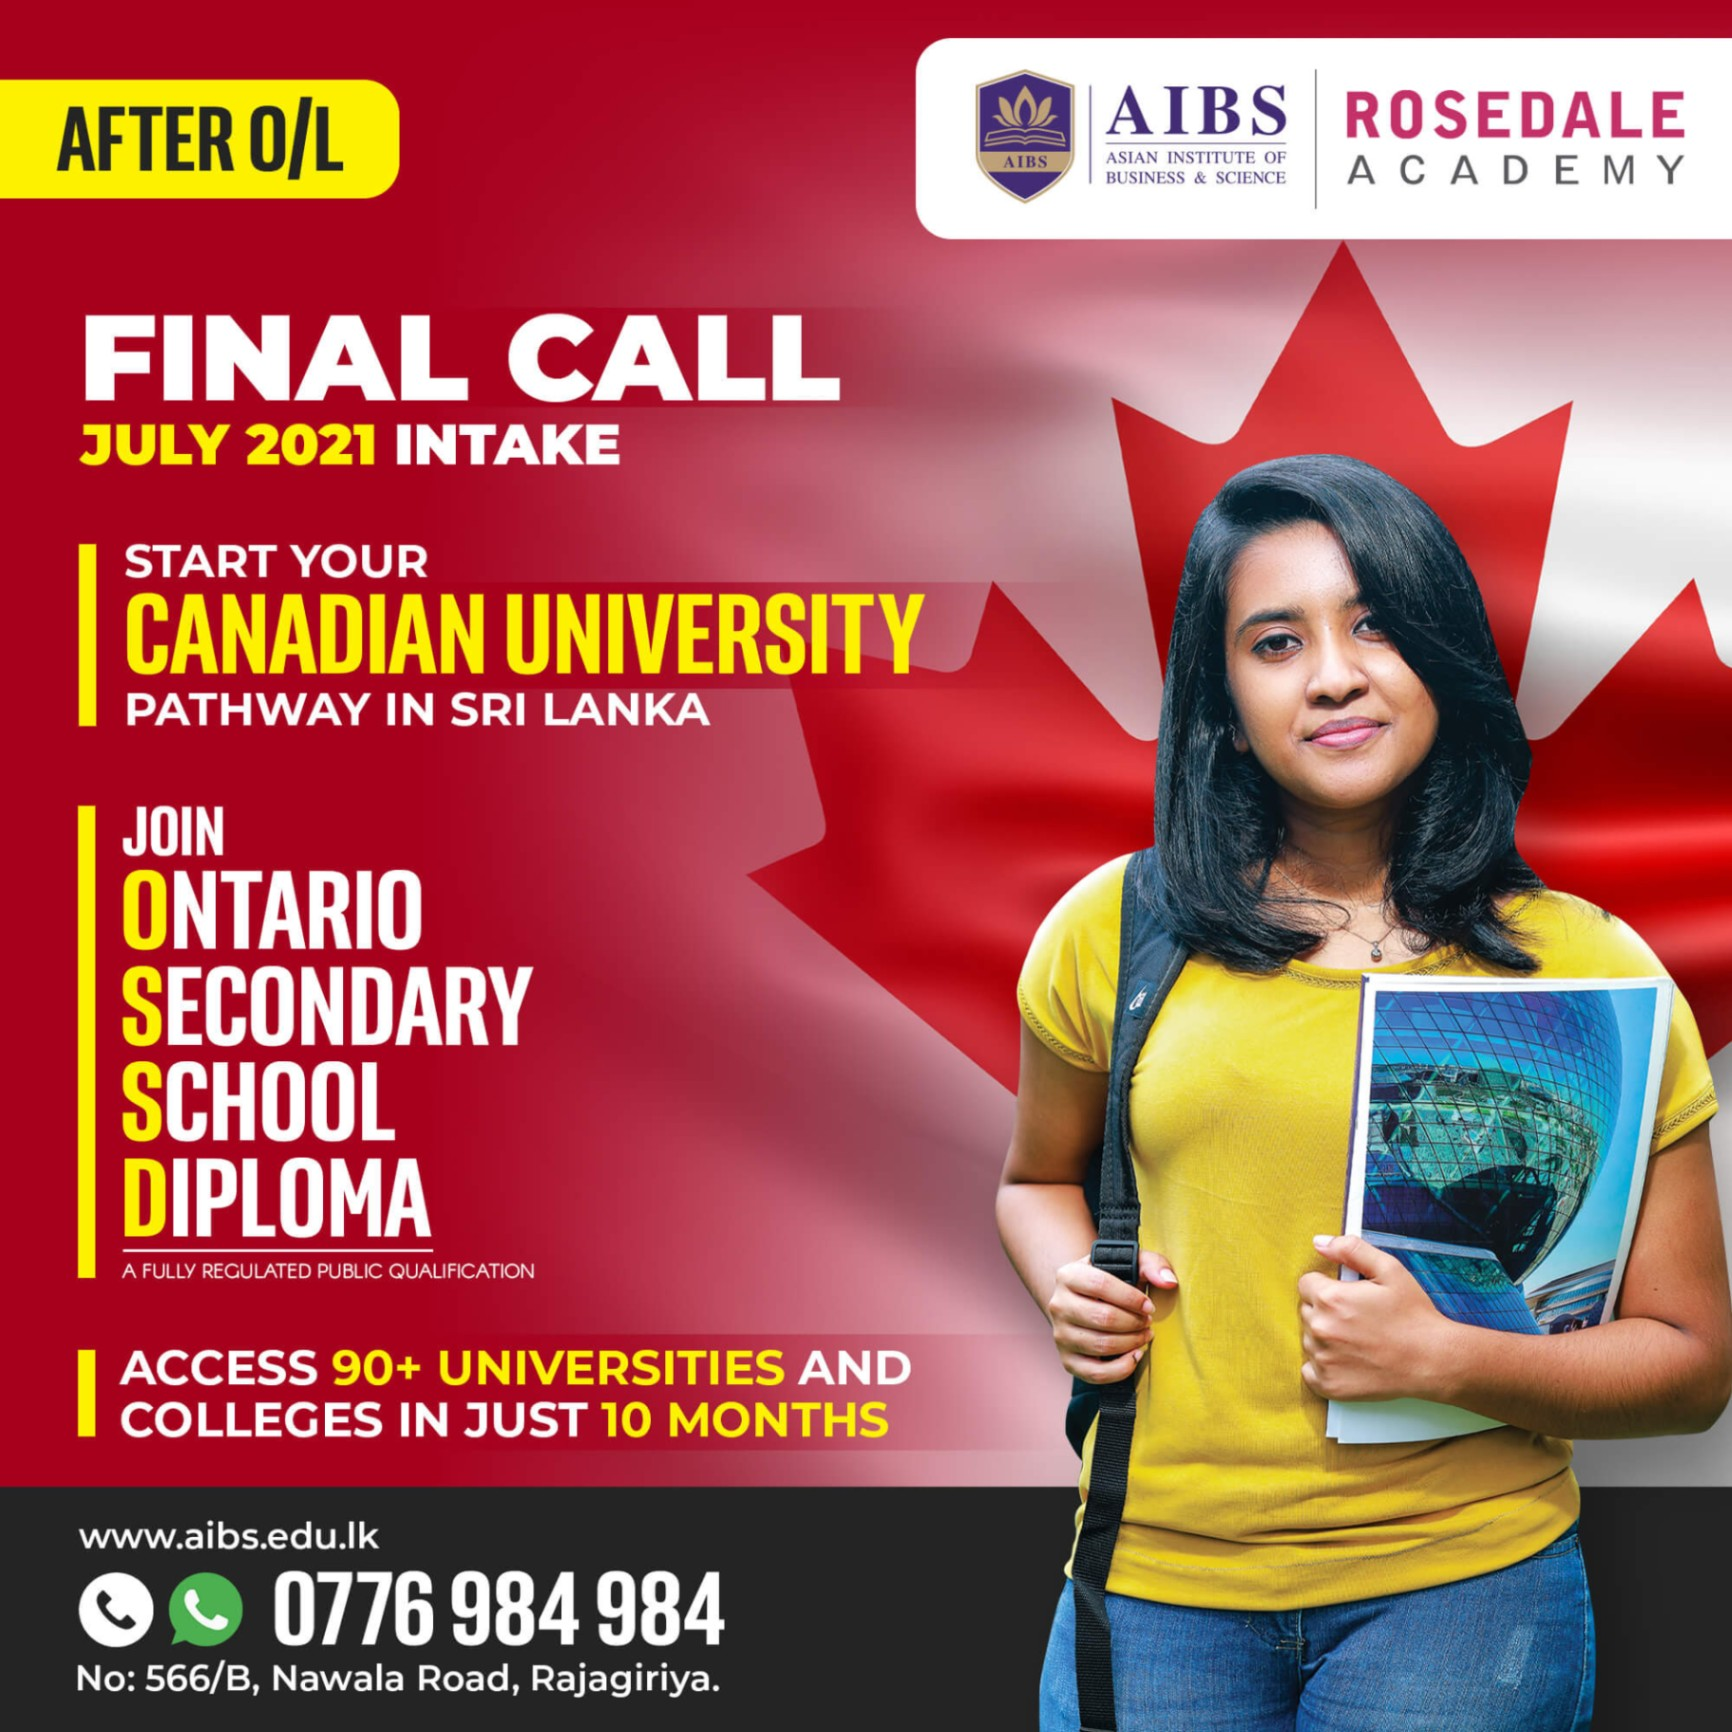 Access 90+ Canadian Universities in just 10 months after OL.